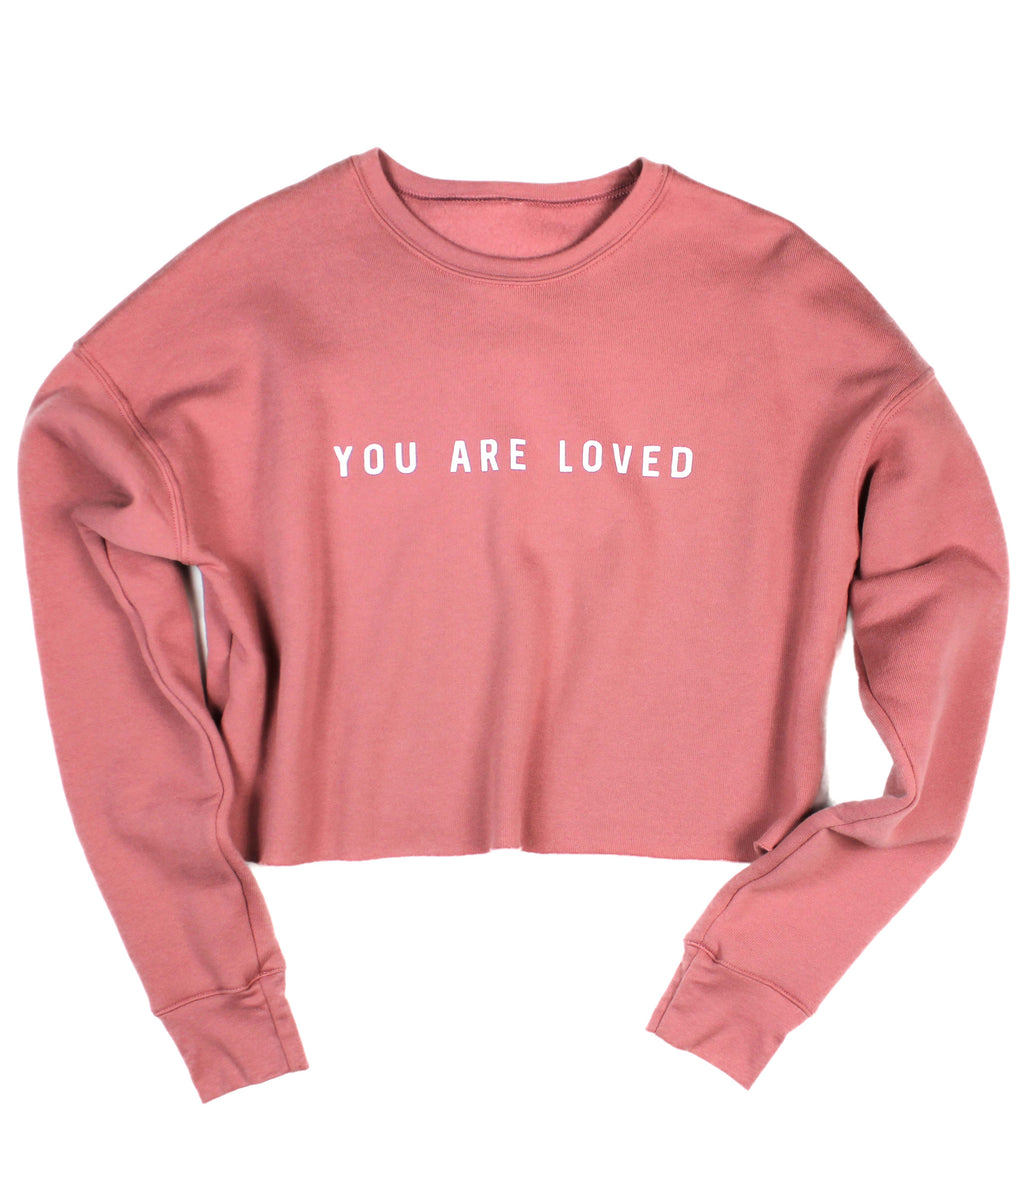 YOU ARE LOVED MAUVE WOMEN'S CROPPED CREW FLEECE